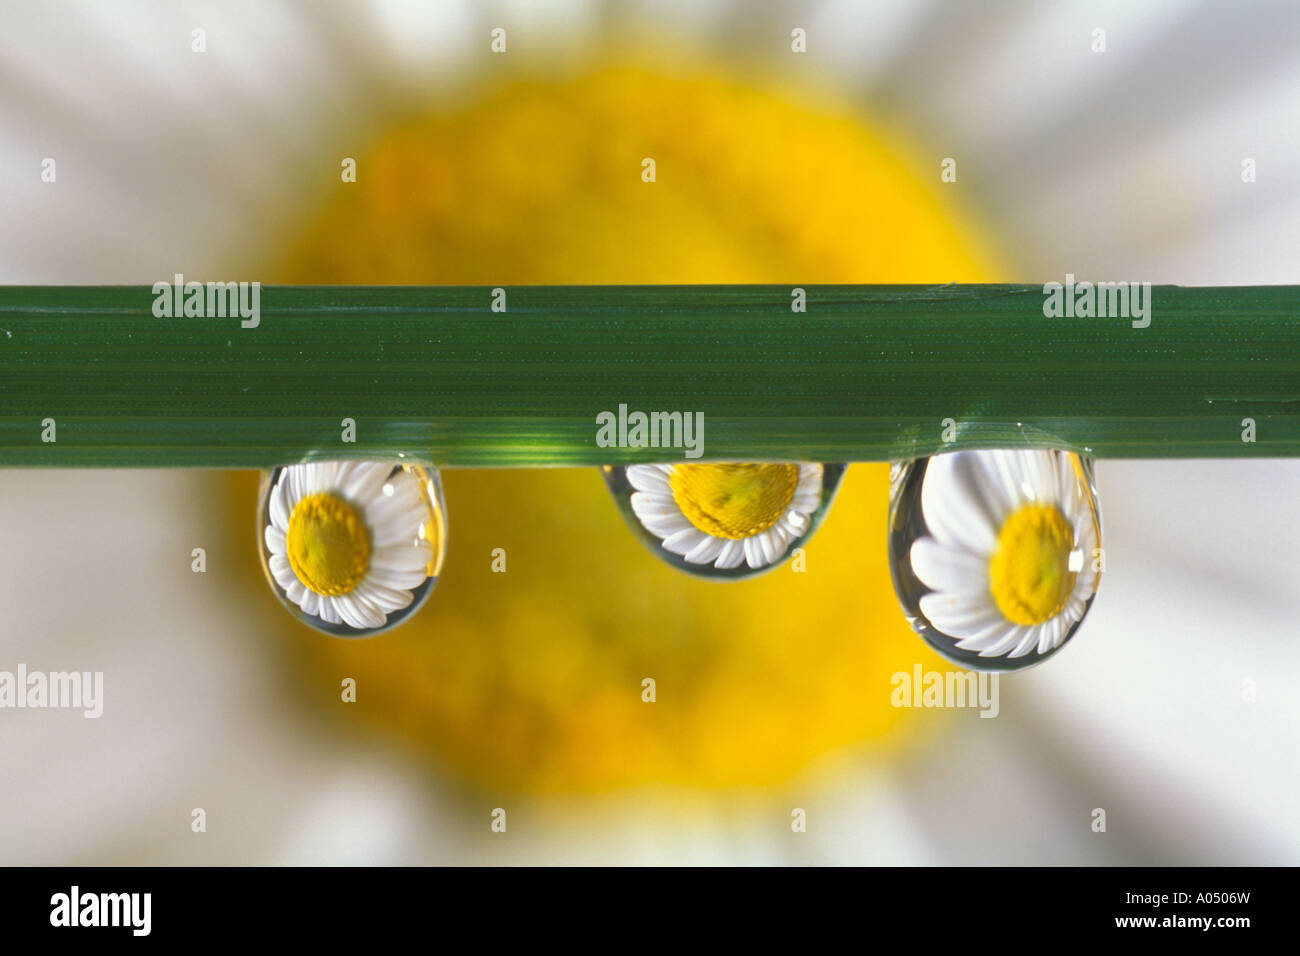 Daisy flower reflected in three drops of water - Stock Image